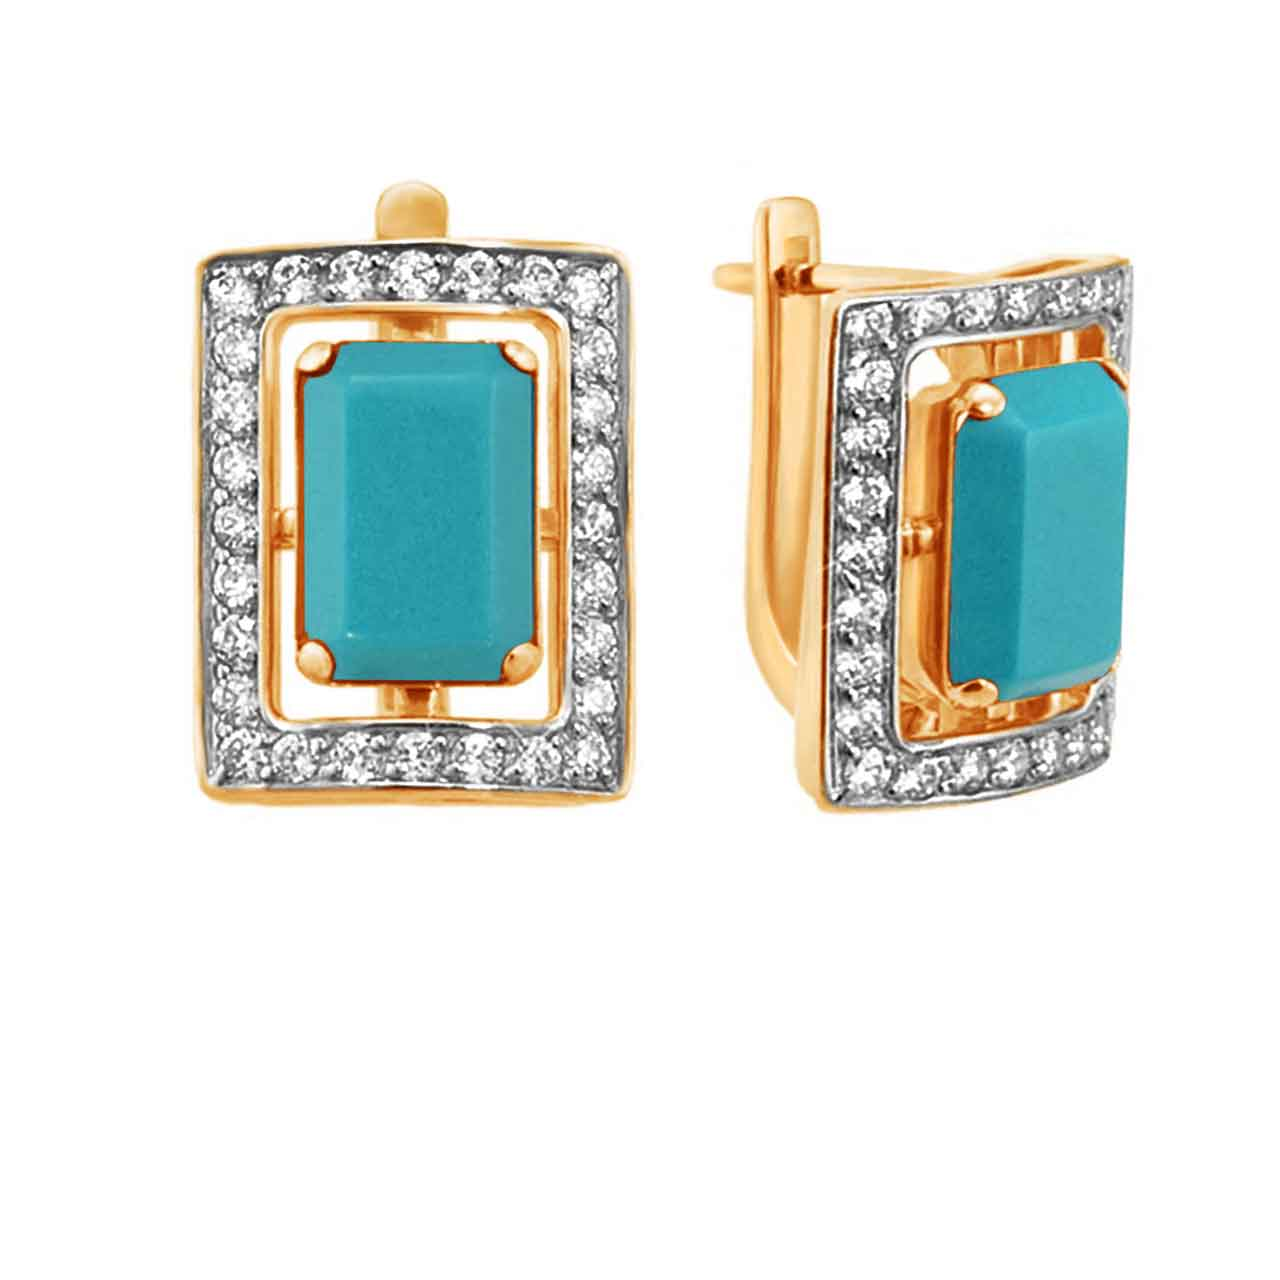 Turquoise gold earrings 1